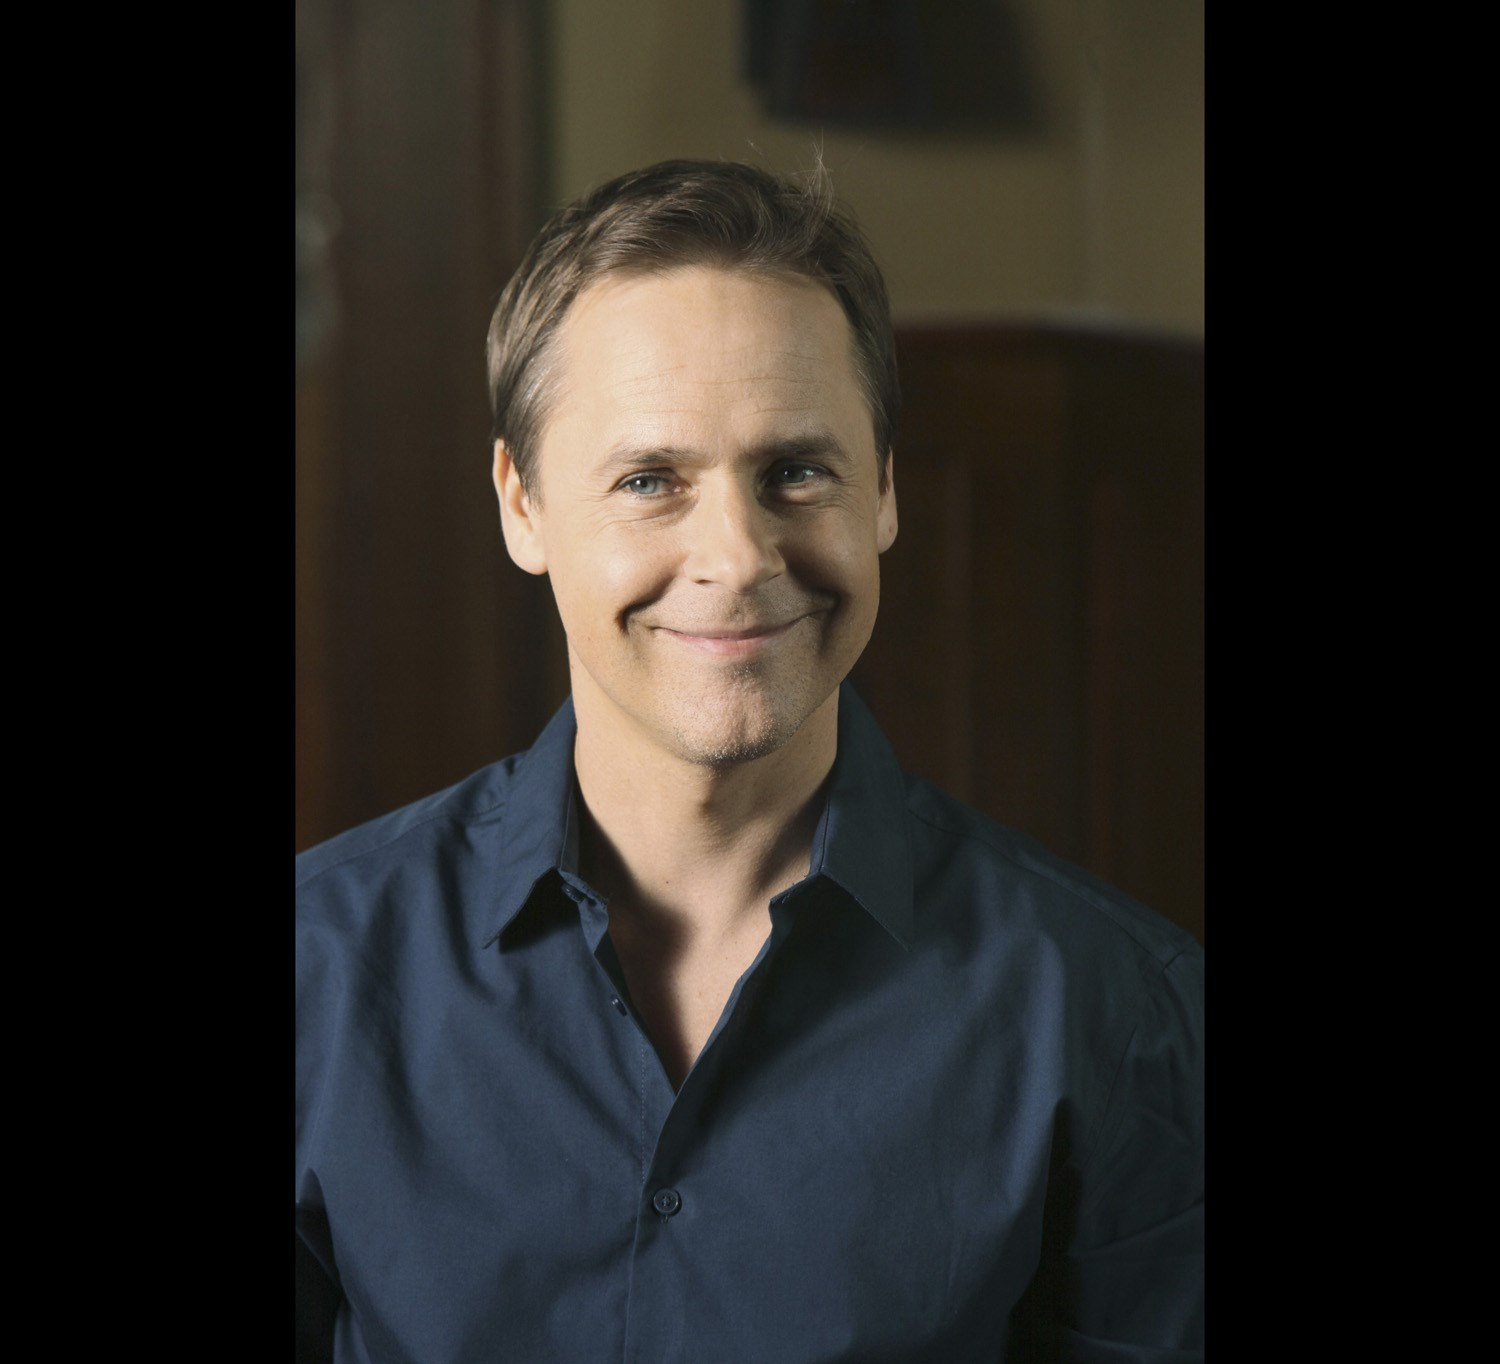 Chad Lowe | Known people - famous people news and biographies